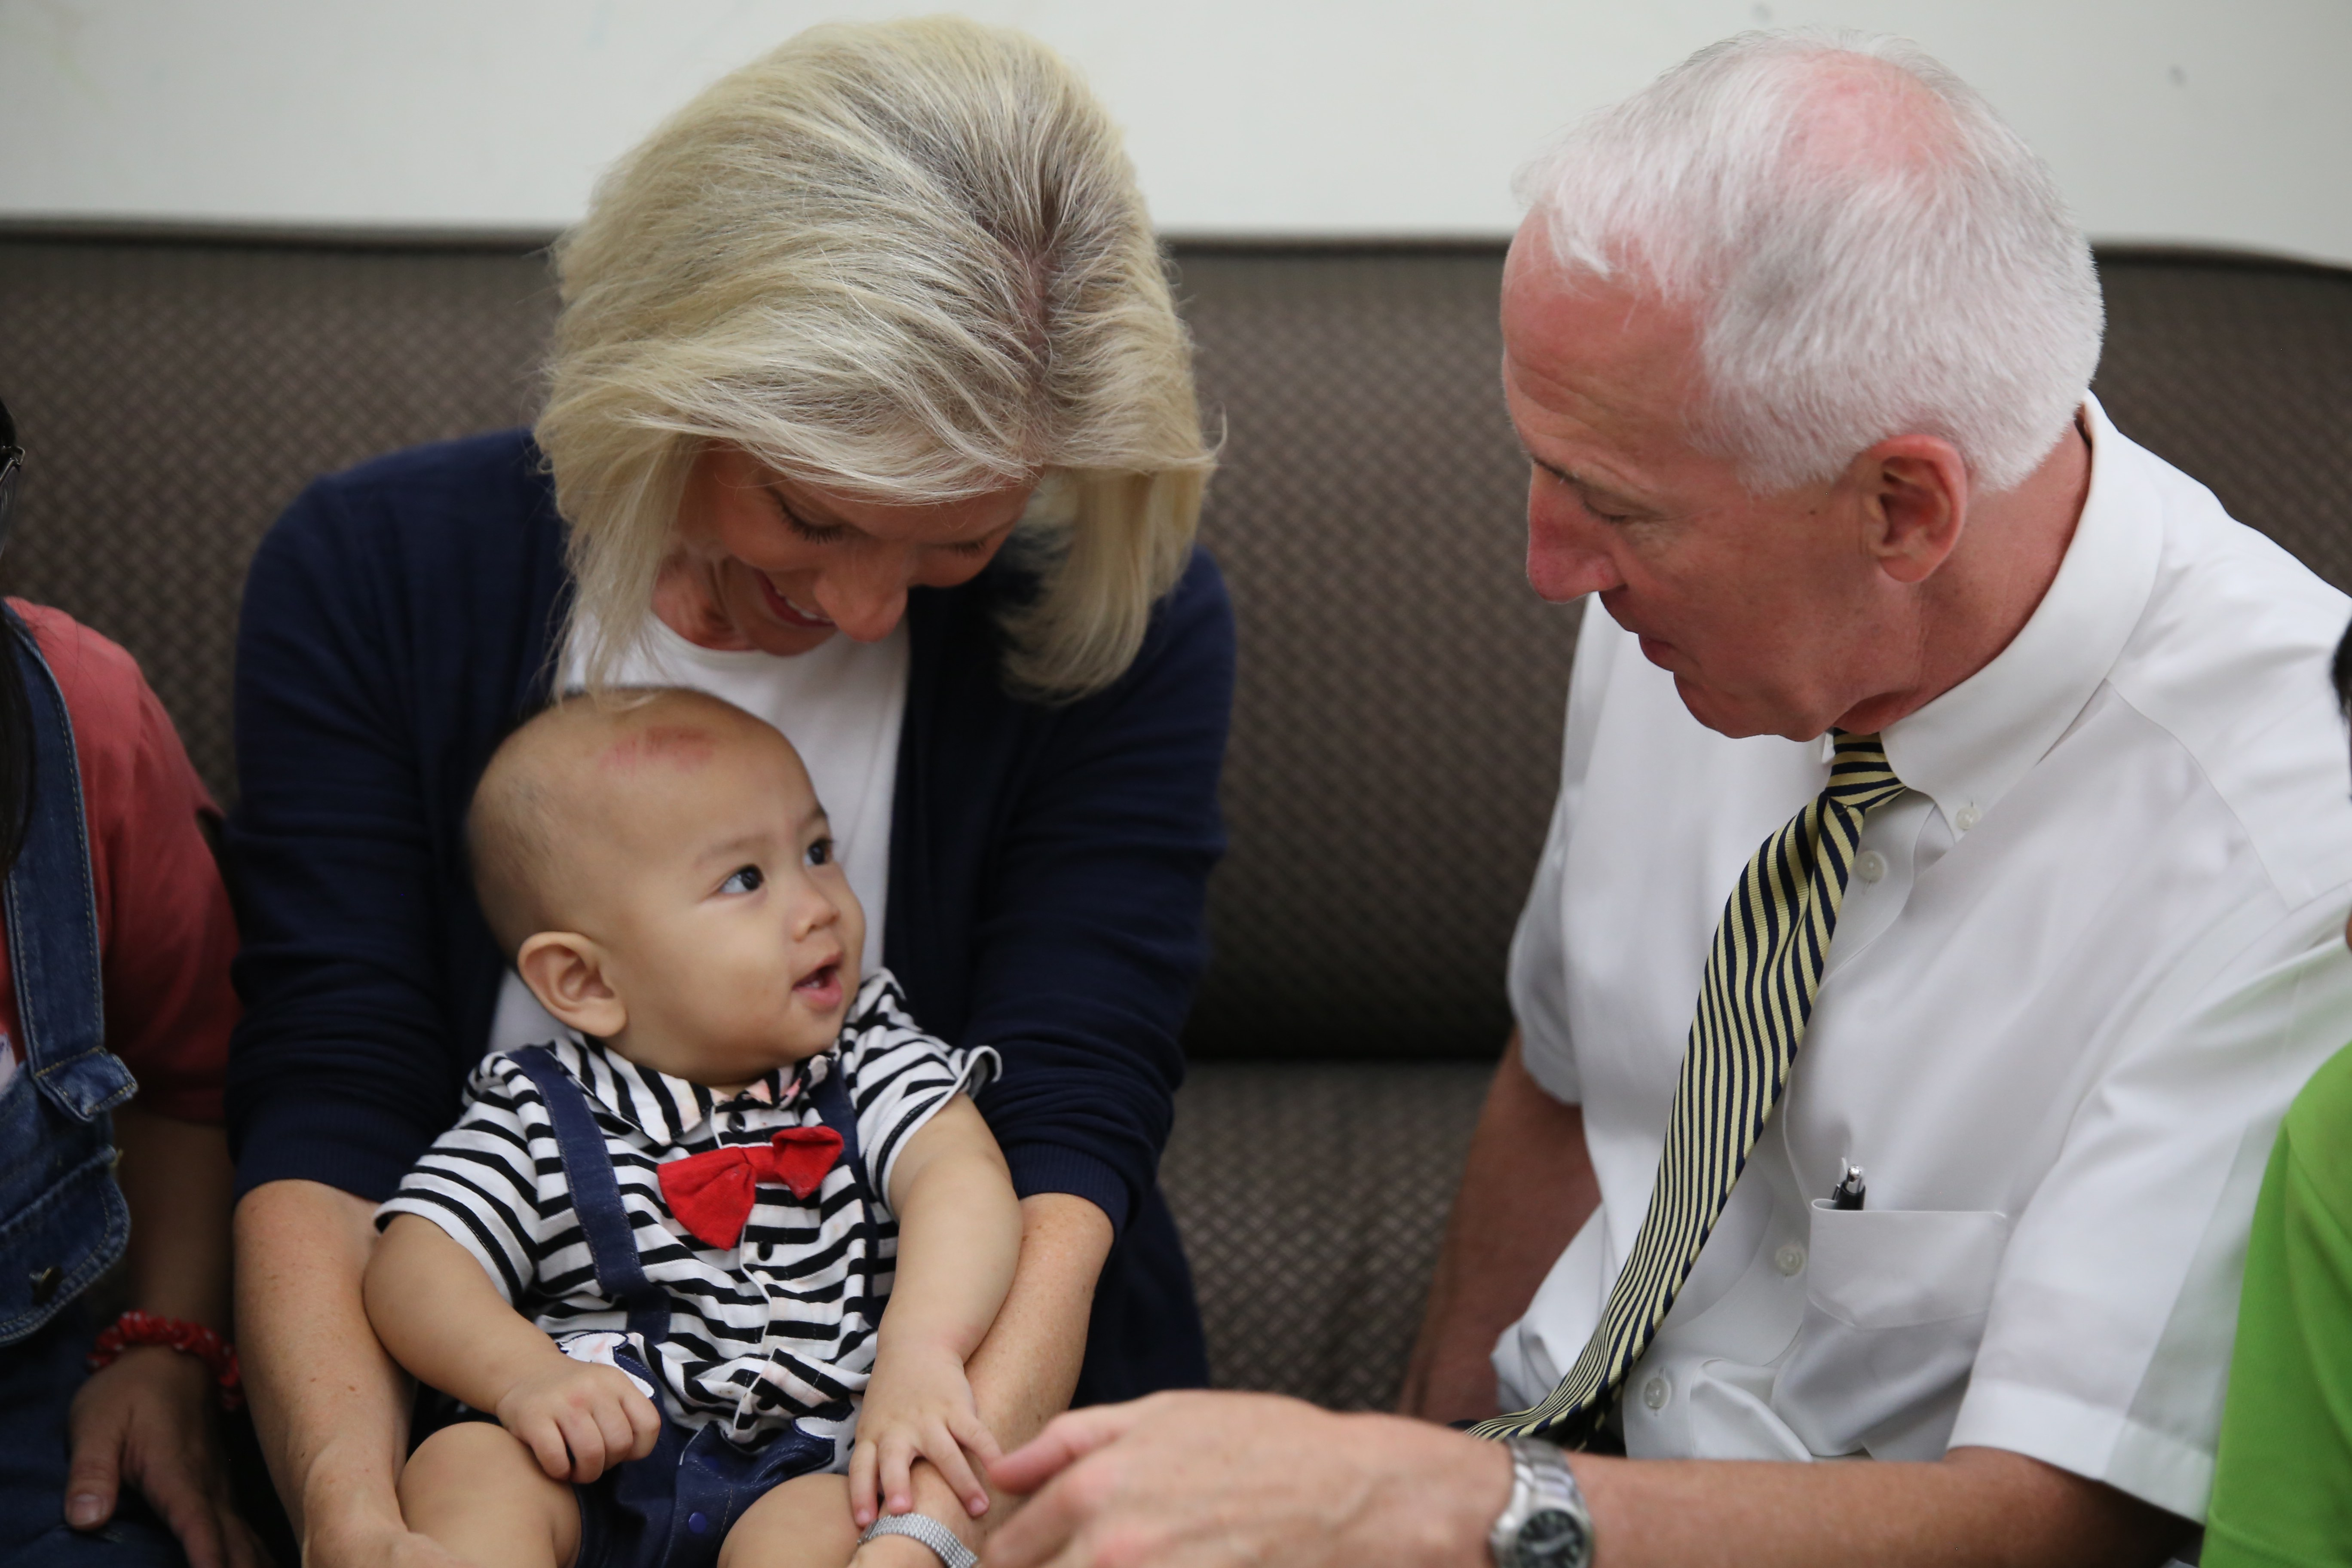 Sister Joy D. Jones, Primary general president, and her husband, Brother Robert B. Jones, interact with a baby while visiting a family in their home in Taitung, Taiwan, during a visit to the Asia Area from Aug. 17 to 14, 2019.